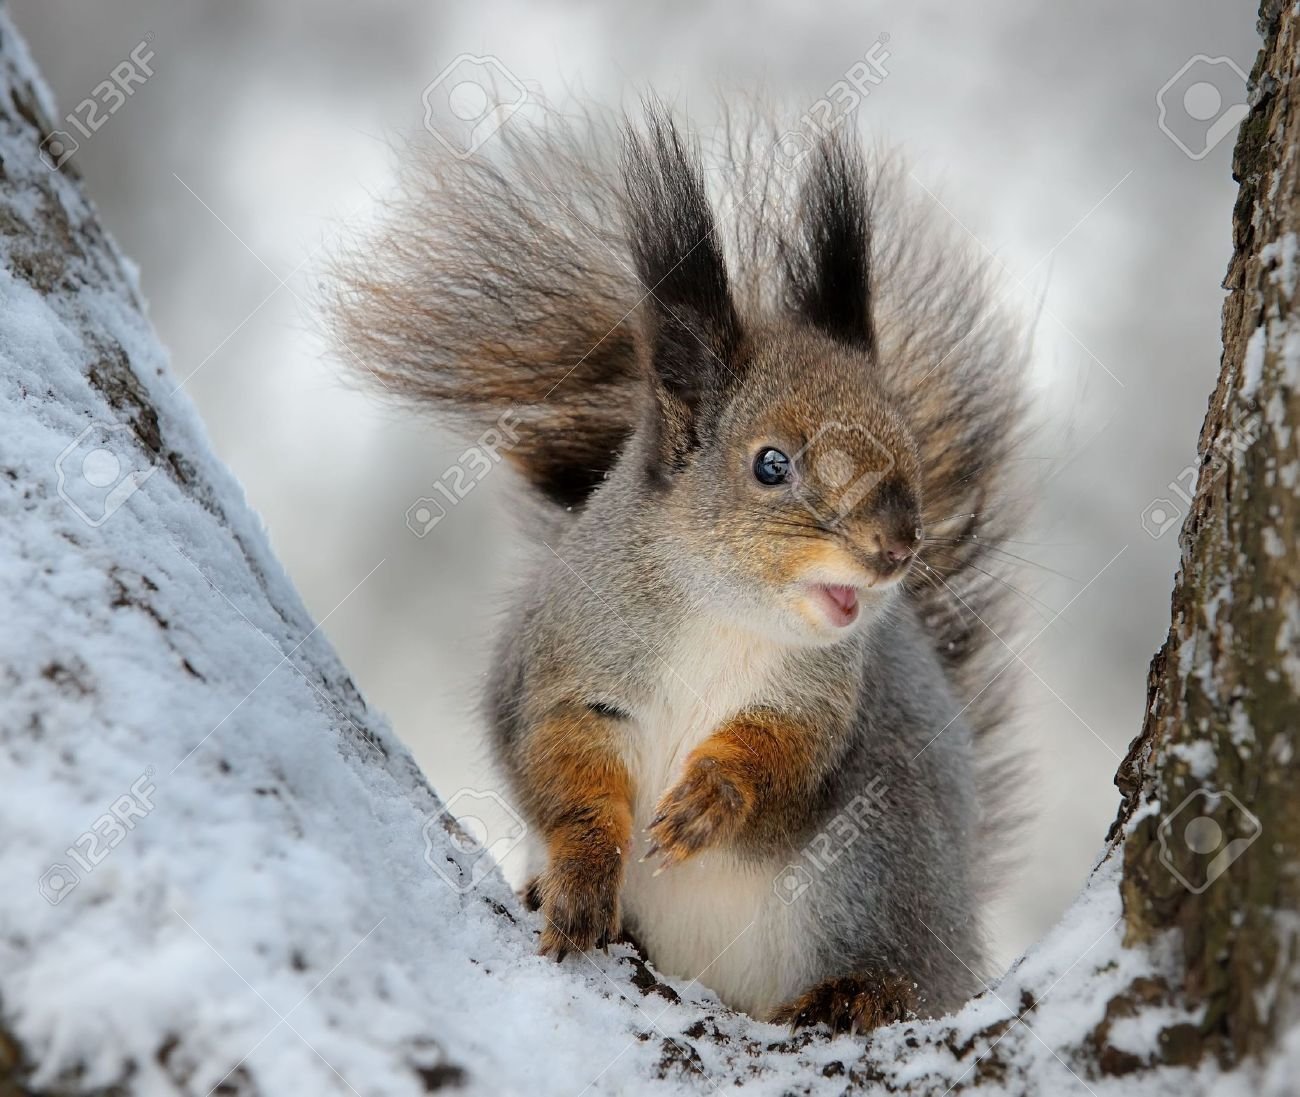 The squirrel on a tree, cold winter. Stock Photo - 5637047